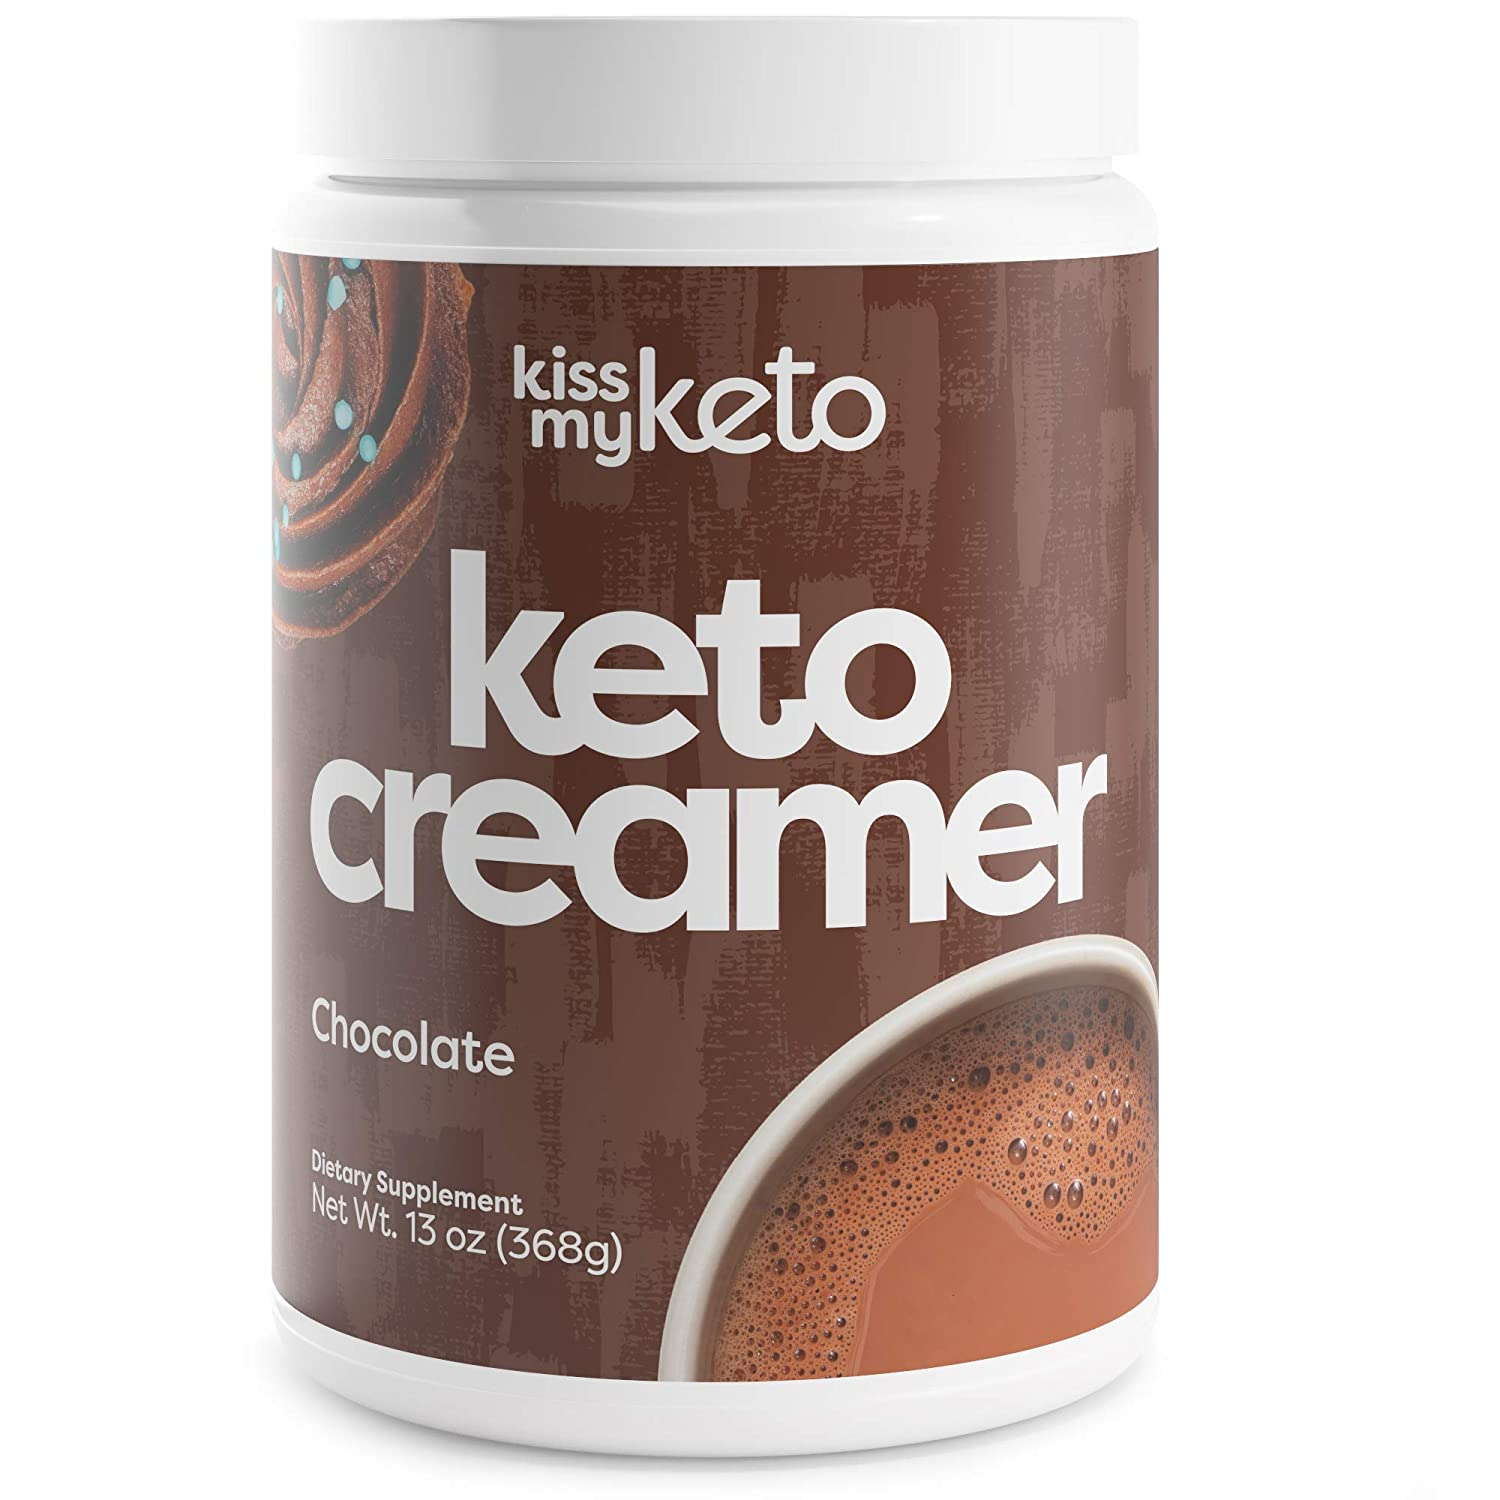 Kiss my Keto, Keto Creamer Chocolate 13oz